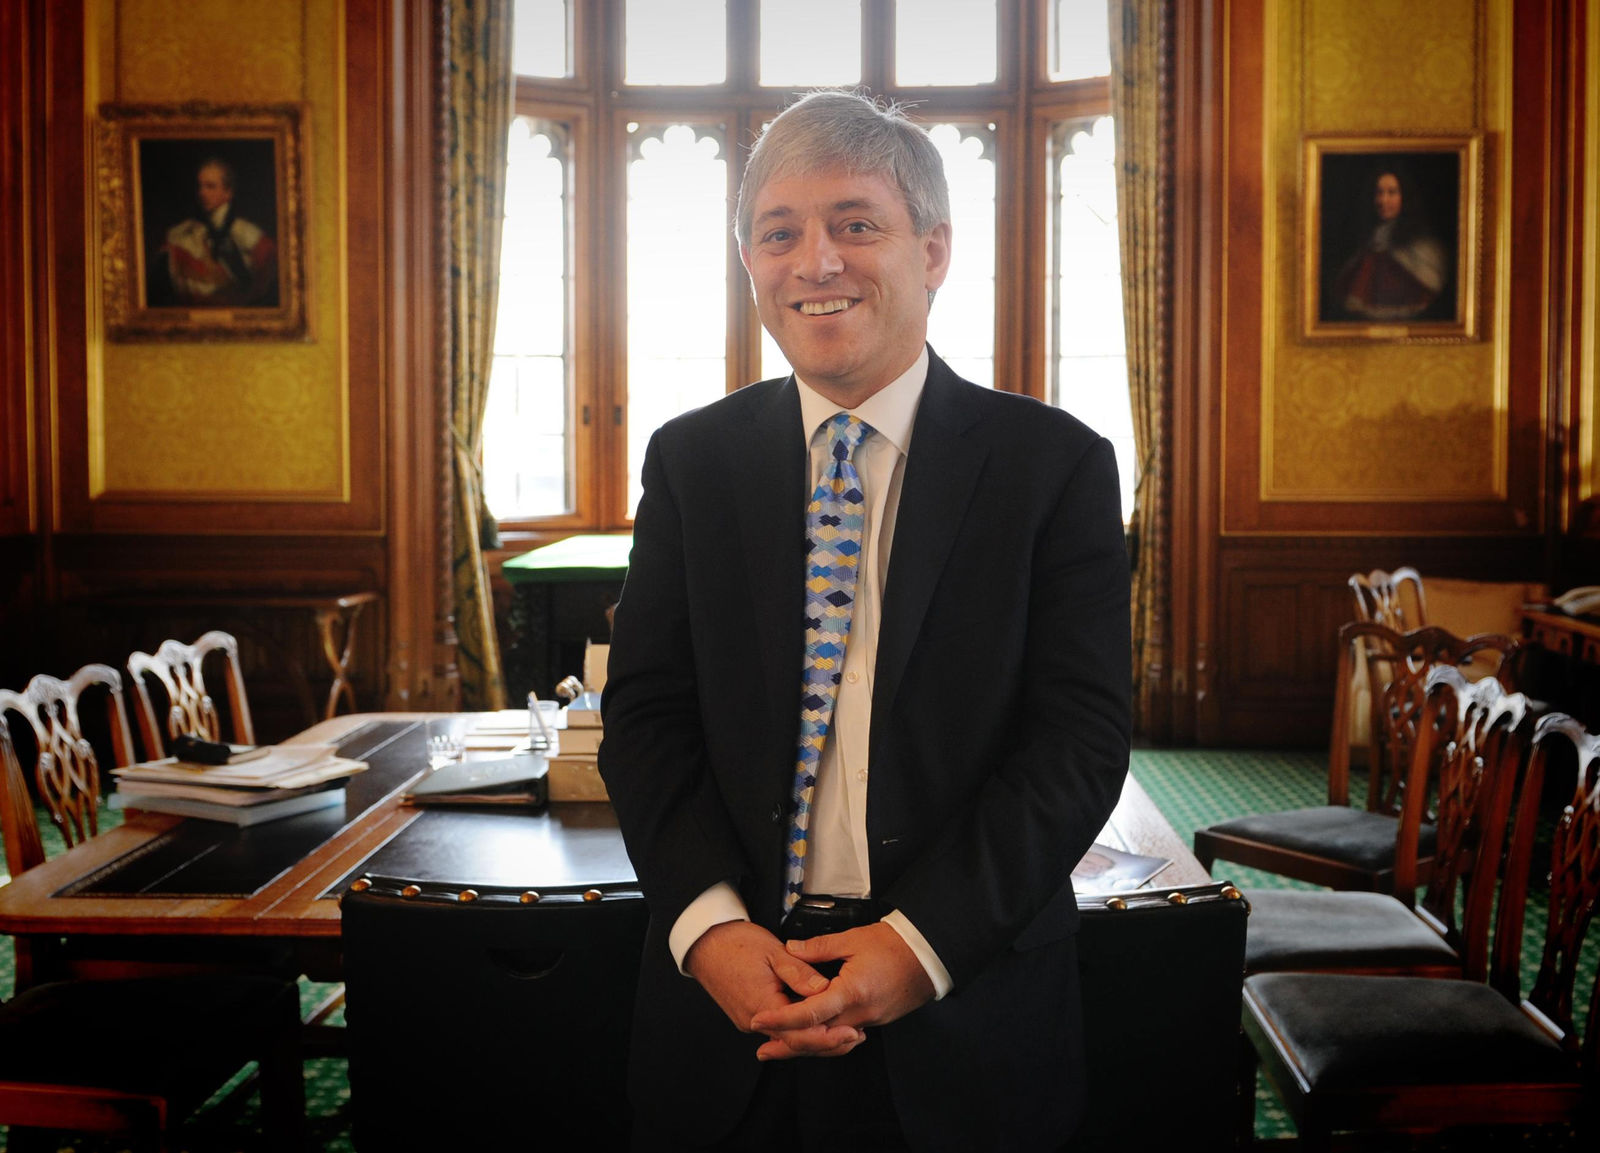 FILE - In this Tuesday June 23, 2009 file photo, the new Speaker of the British House of Commons, John Bercow, is seen at his office, at the House of Commons in Westminster, London, one day after he was appointed to the position. A colorful era in British parliamentary history is coming to a close with Speaker of the House John Bercow's abrupt announcement Monday, Sept. 9, 2019 that he will leave his influential post by the end of October. (AP Photo/Stefan Rousseau, file)